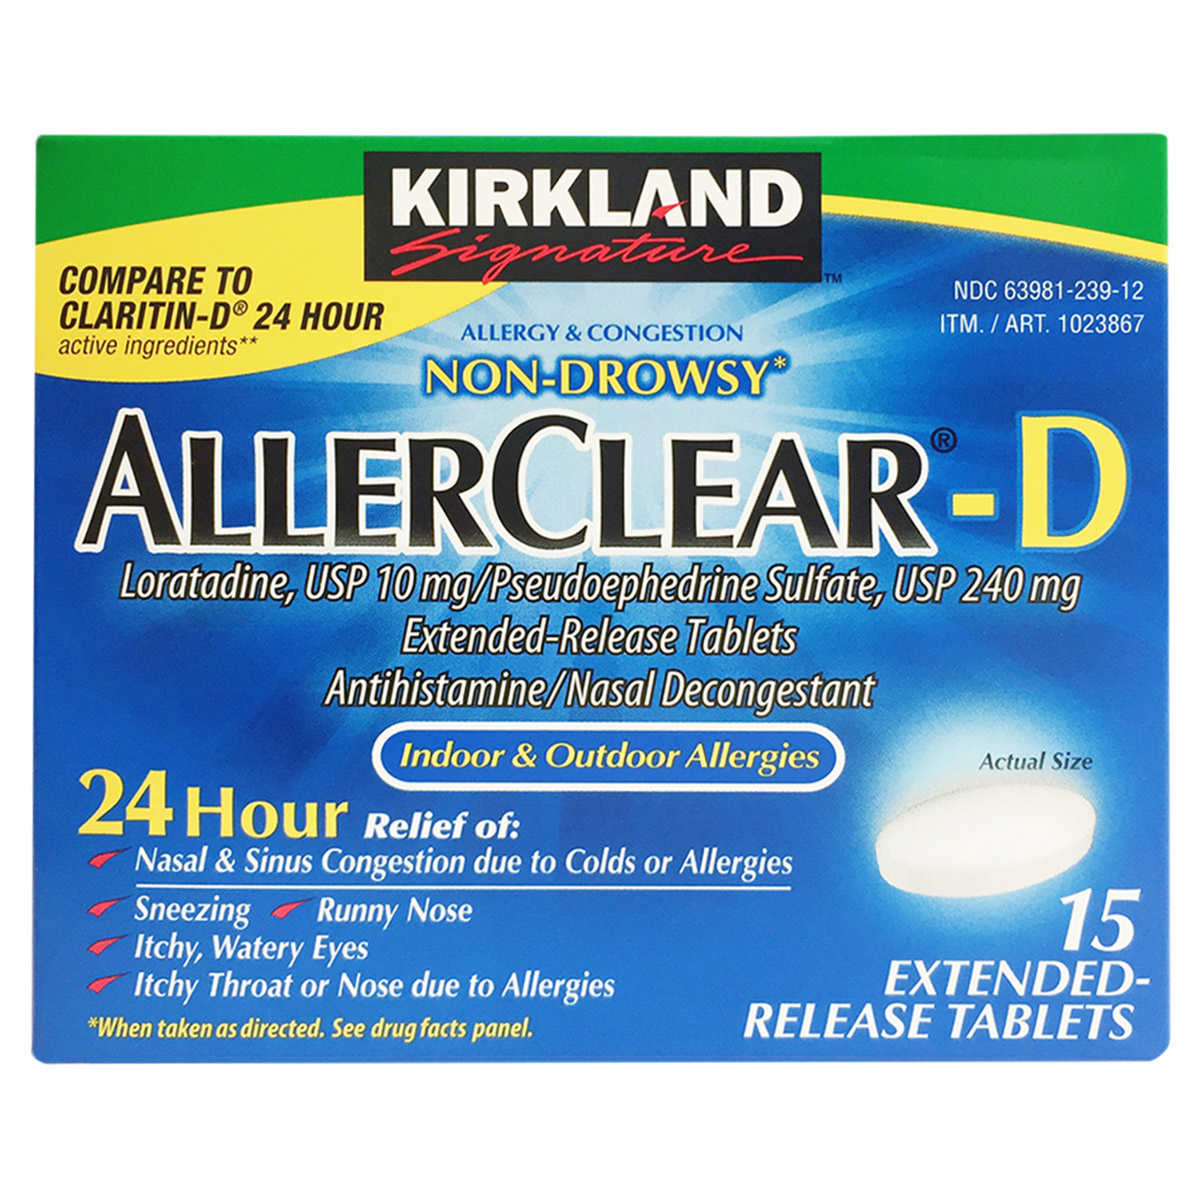 Kirkland Signature Allerclear-D 24 Hour, 15 Extended Release Tablets